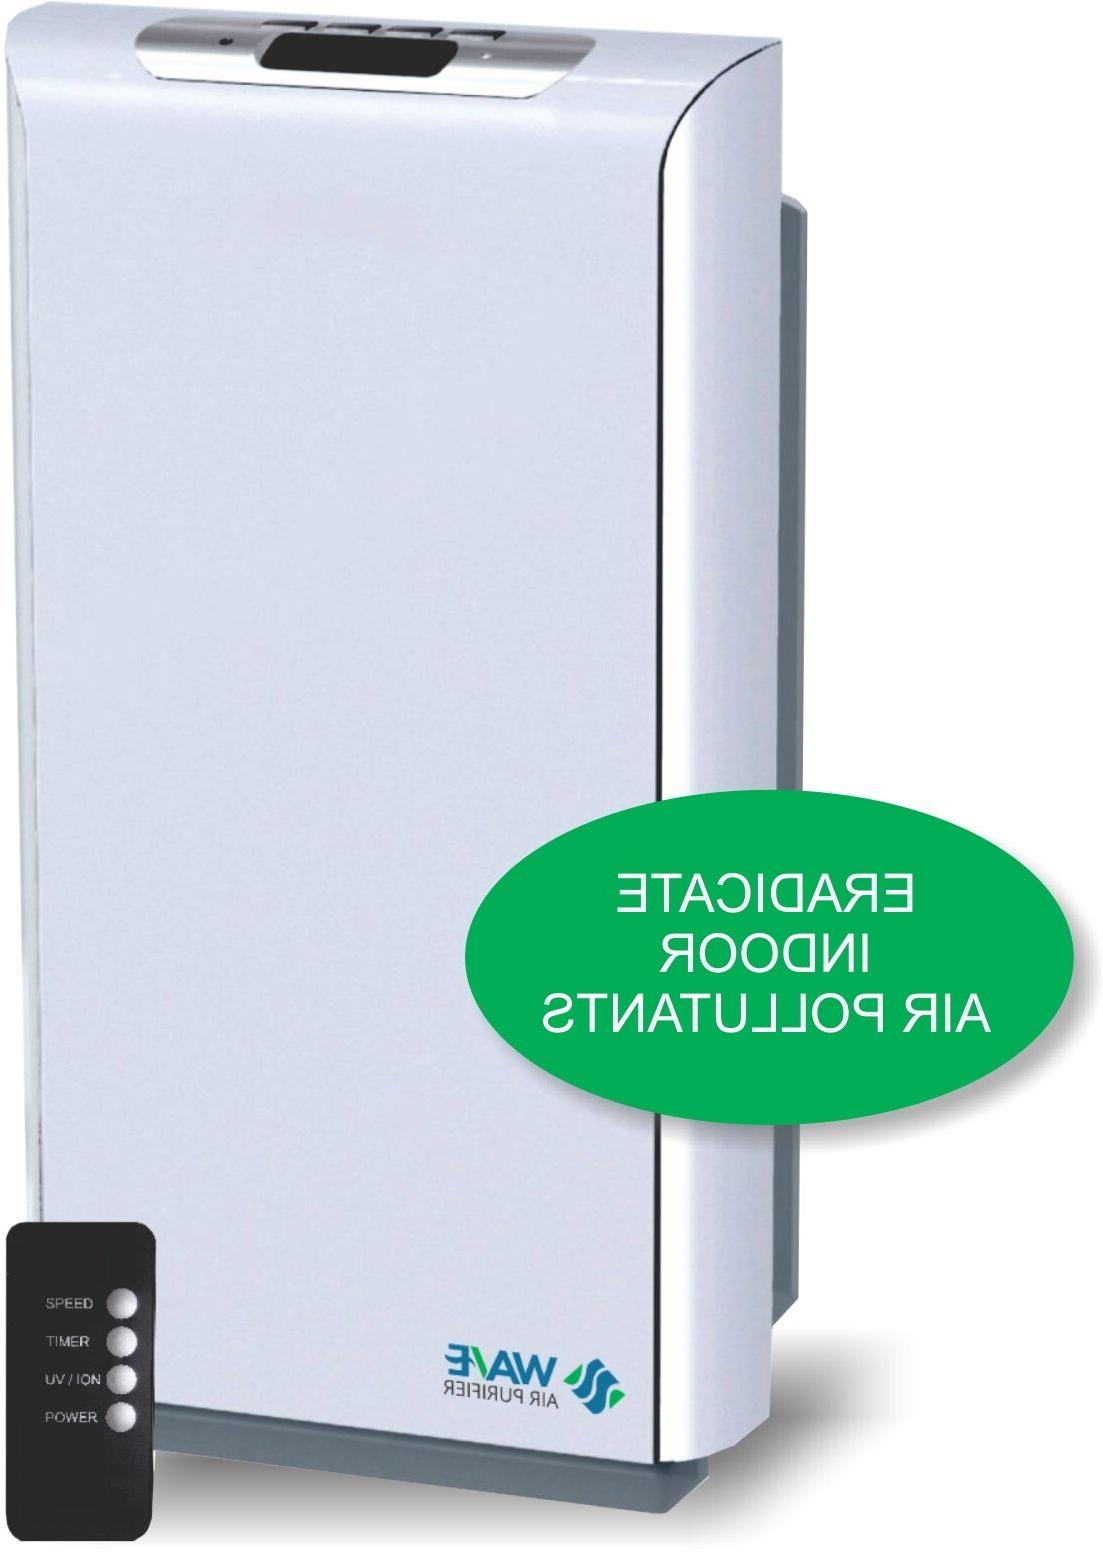 WAVE 6 Stage Air Purifier